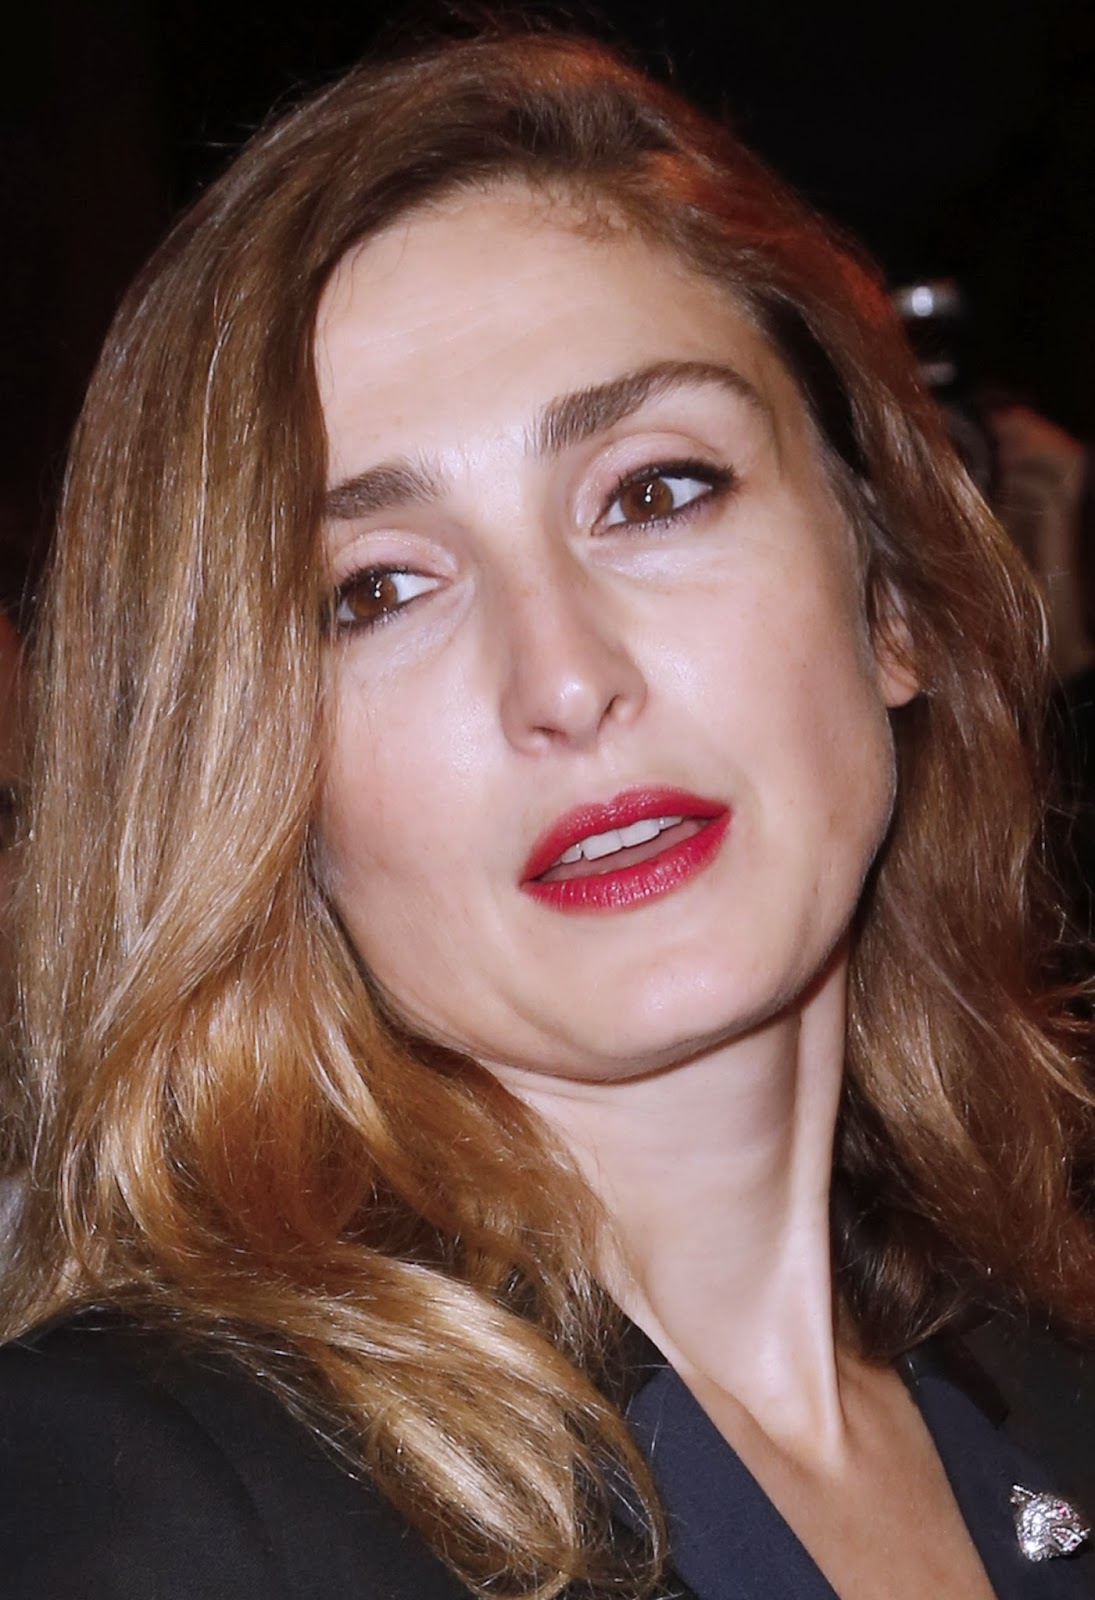 Actress, Cannes, Confirm, Figurines, First Lady, France, Francois Hollande, Hollywood, Hospital, Julie Gayet, Love Affair, News, Photo, Politician, Politics, President, Press Conference, Showbiz, Valerie Trierweiler,